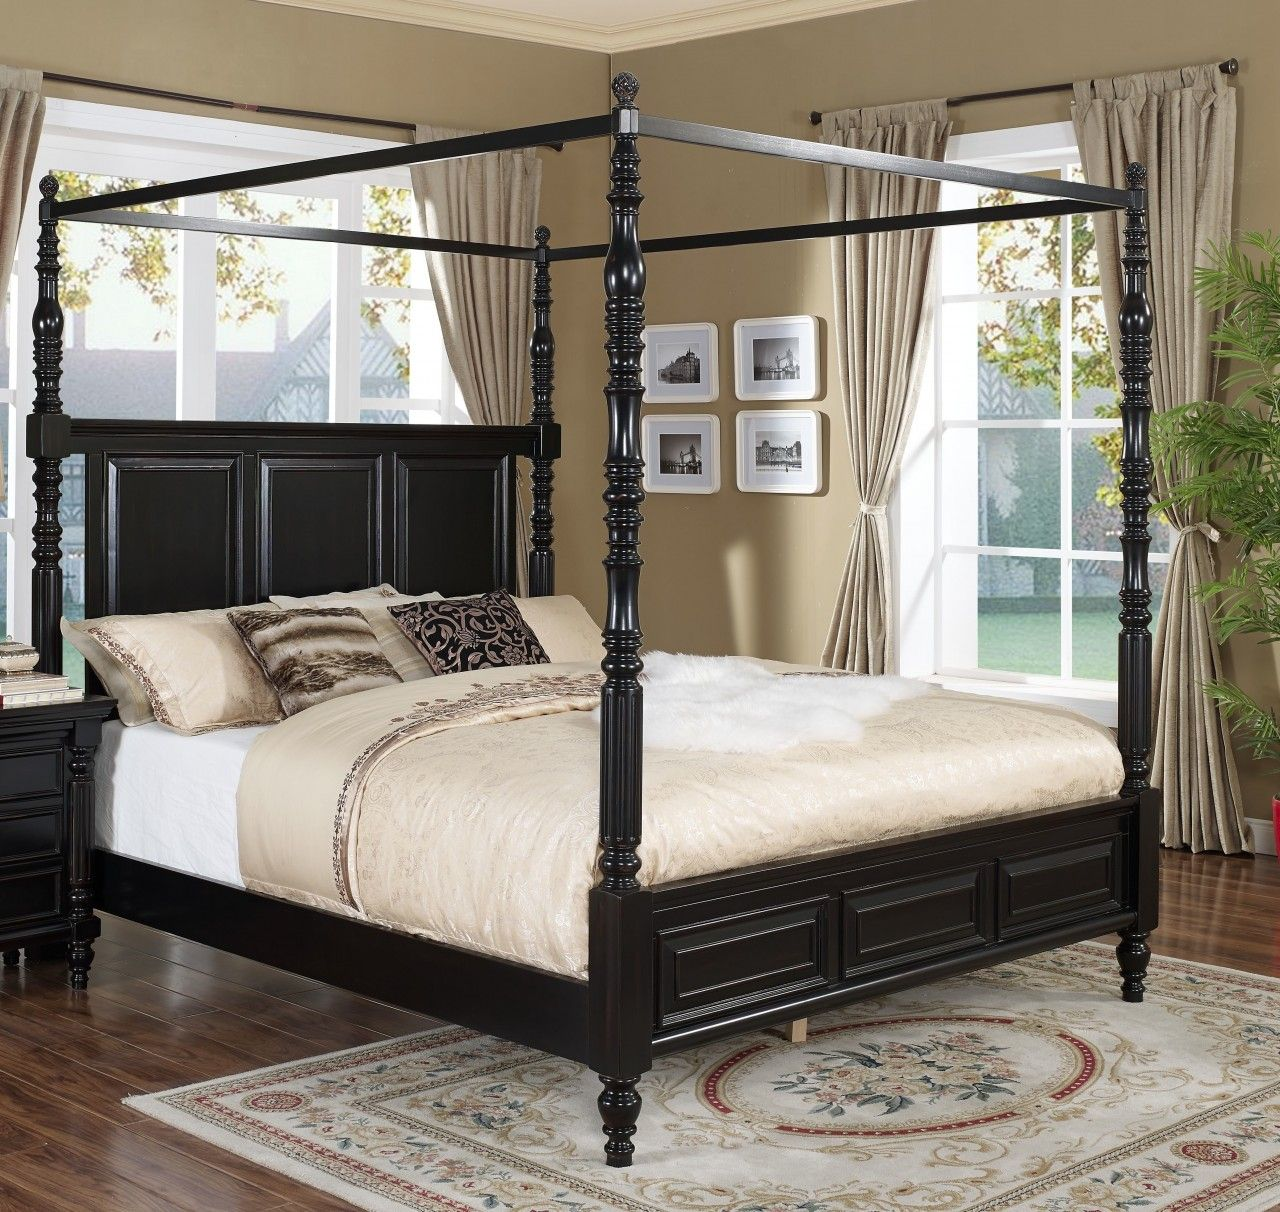 New Classic Martinique Queen Canopy Bed with Drapes in Rubbed Black 00-222-311Q : canopy curtains for queen bed - memphite.com